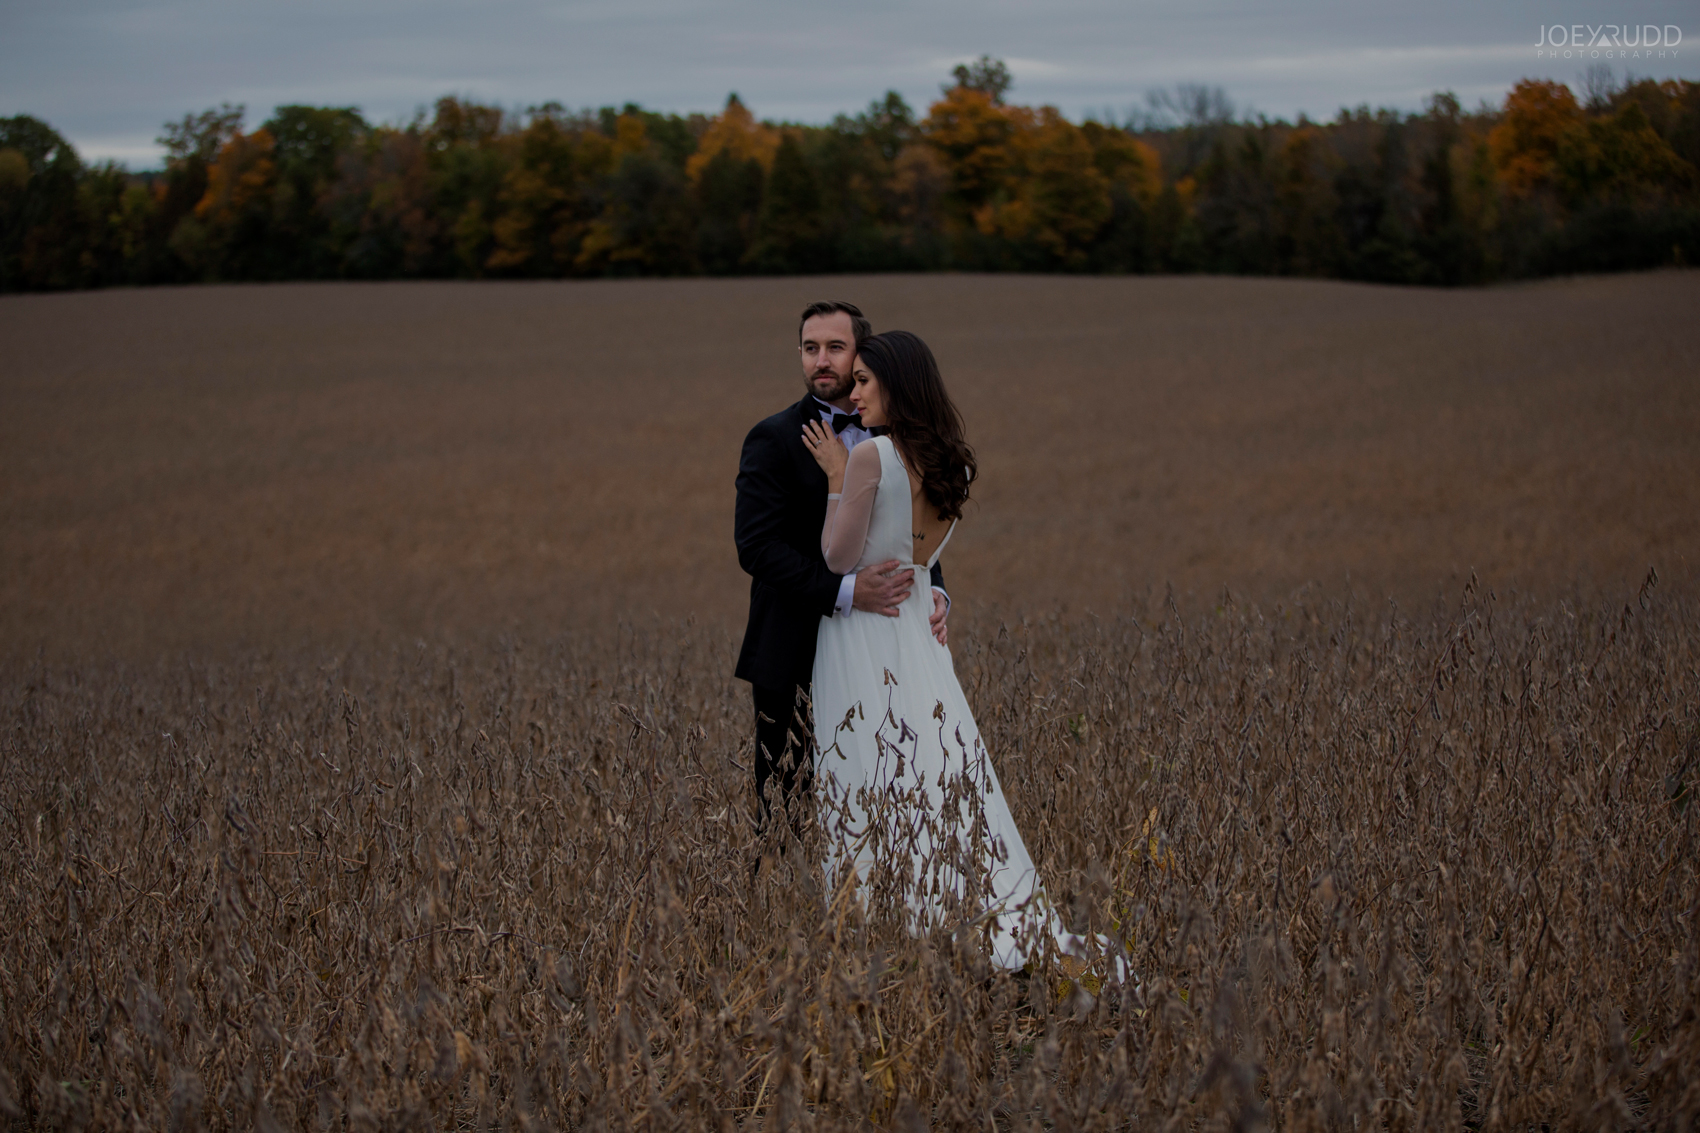 2018_10_07---Aksana-&-Mark-714TopRight.jpgEvermore Wedding, Evermore Wedding and Events, Ottawa Wedding, Almonte Wedding, Ottawa Photographer, Wedding Photography, Wedding Photographer, Joey Rudd Photography, Farm Wedding, Rustic Wedding, Barn Wedding Venue, Wedding Venue, Ottawa Wedding Venue, Almonte Riverside Inn, Candid, field wedding photo, dramatic photo